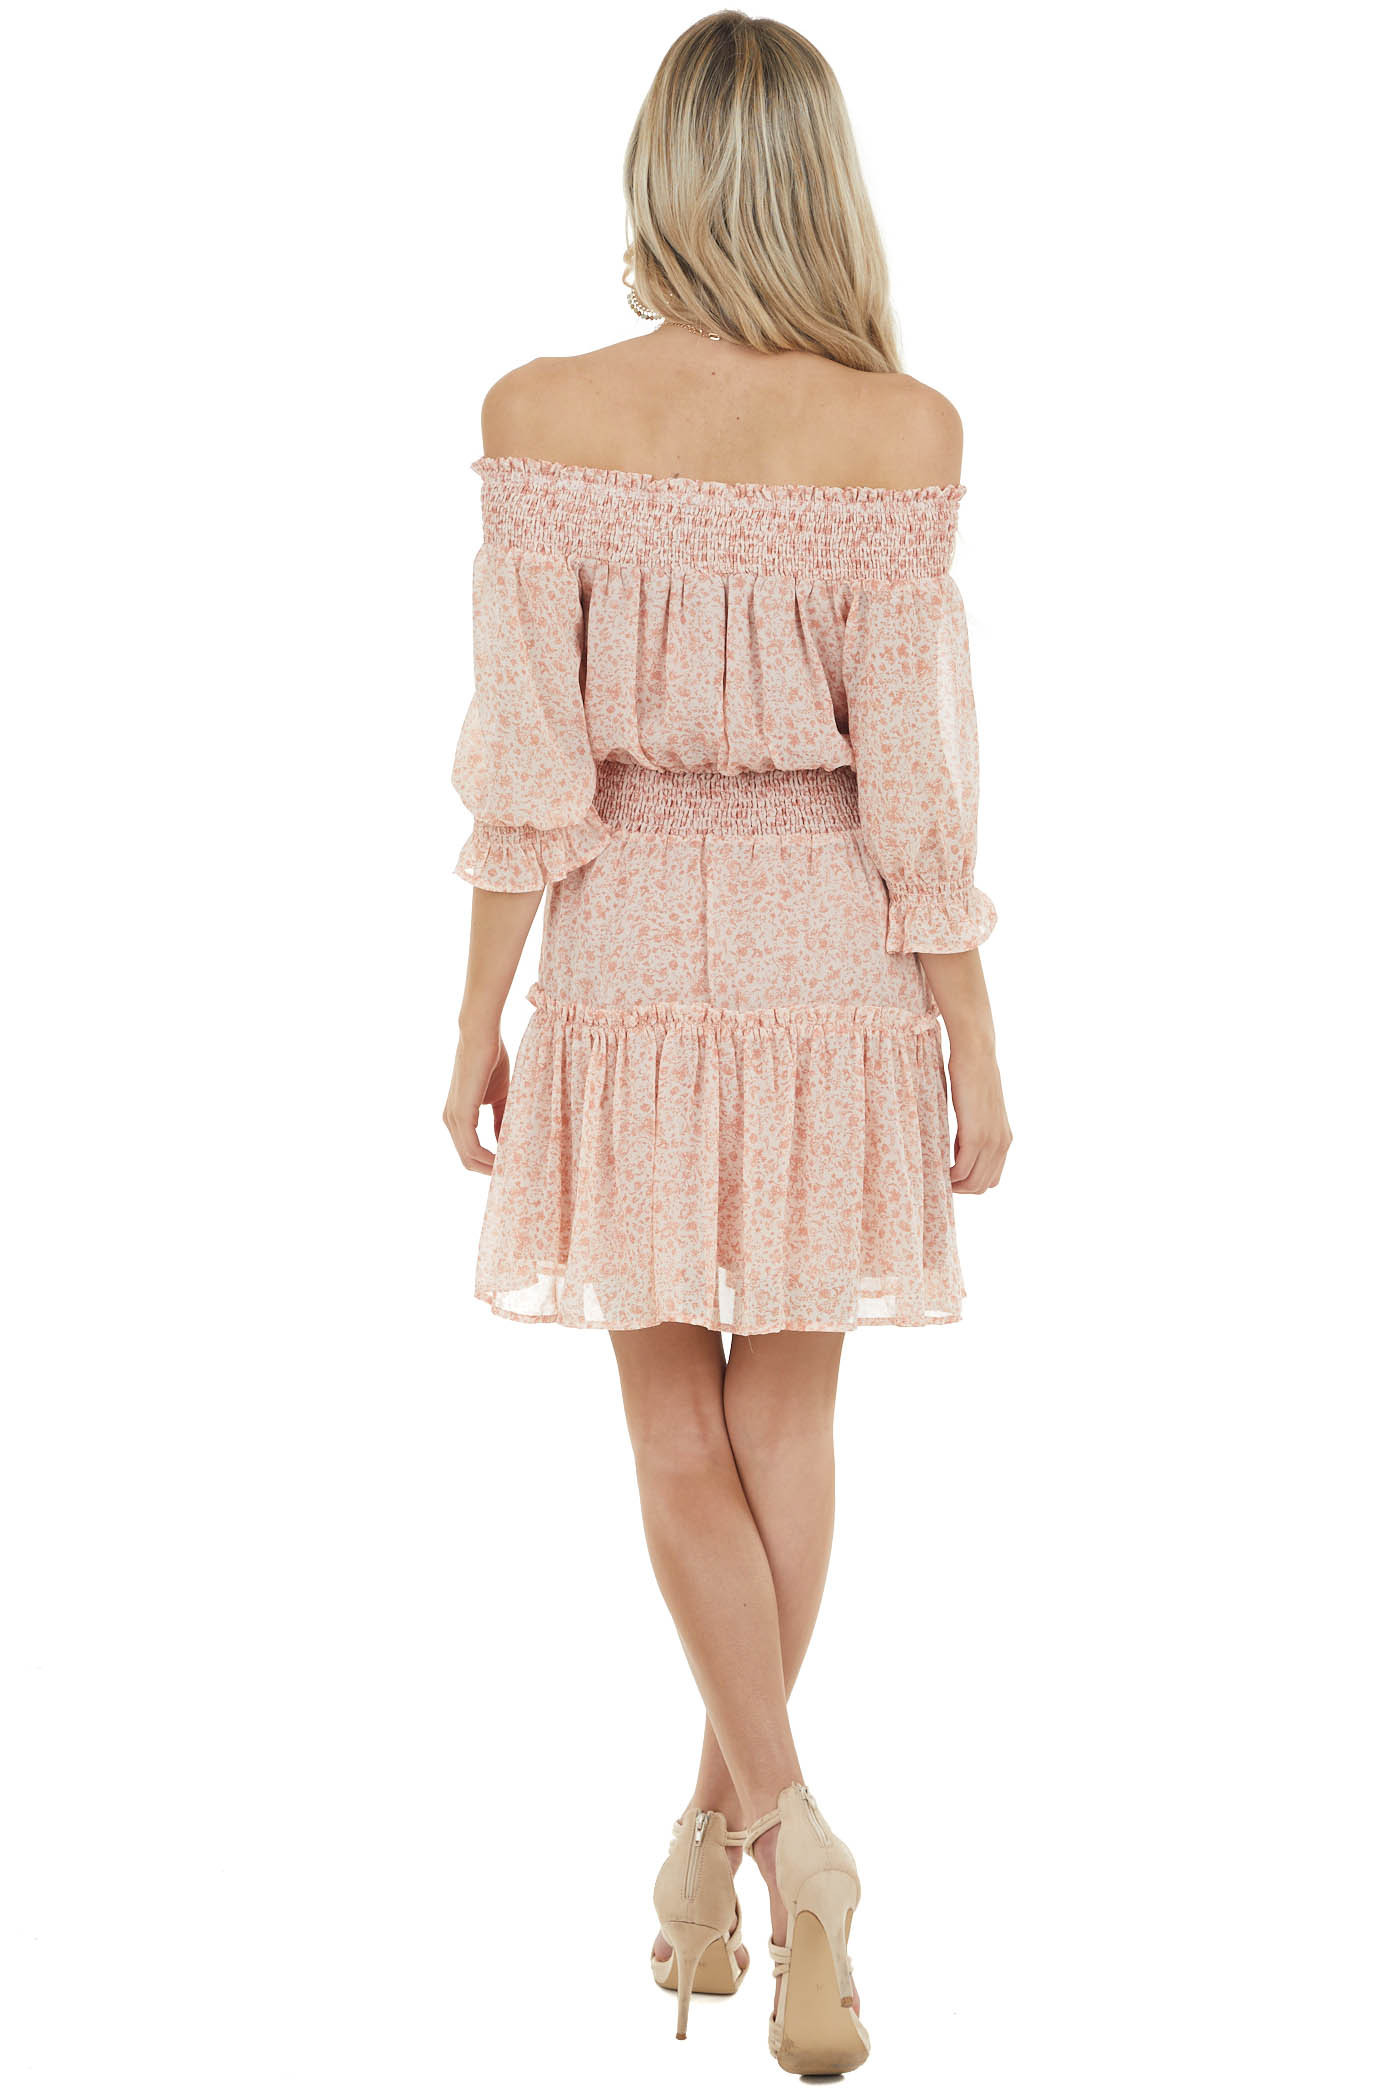 Peach Floral Print Tiered Dress with Bubble Sleeves